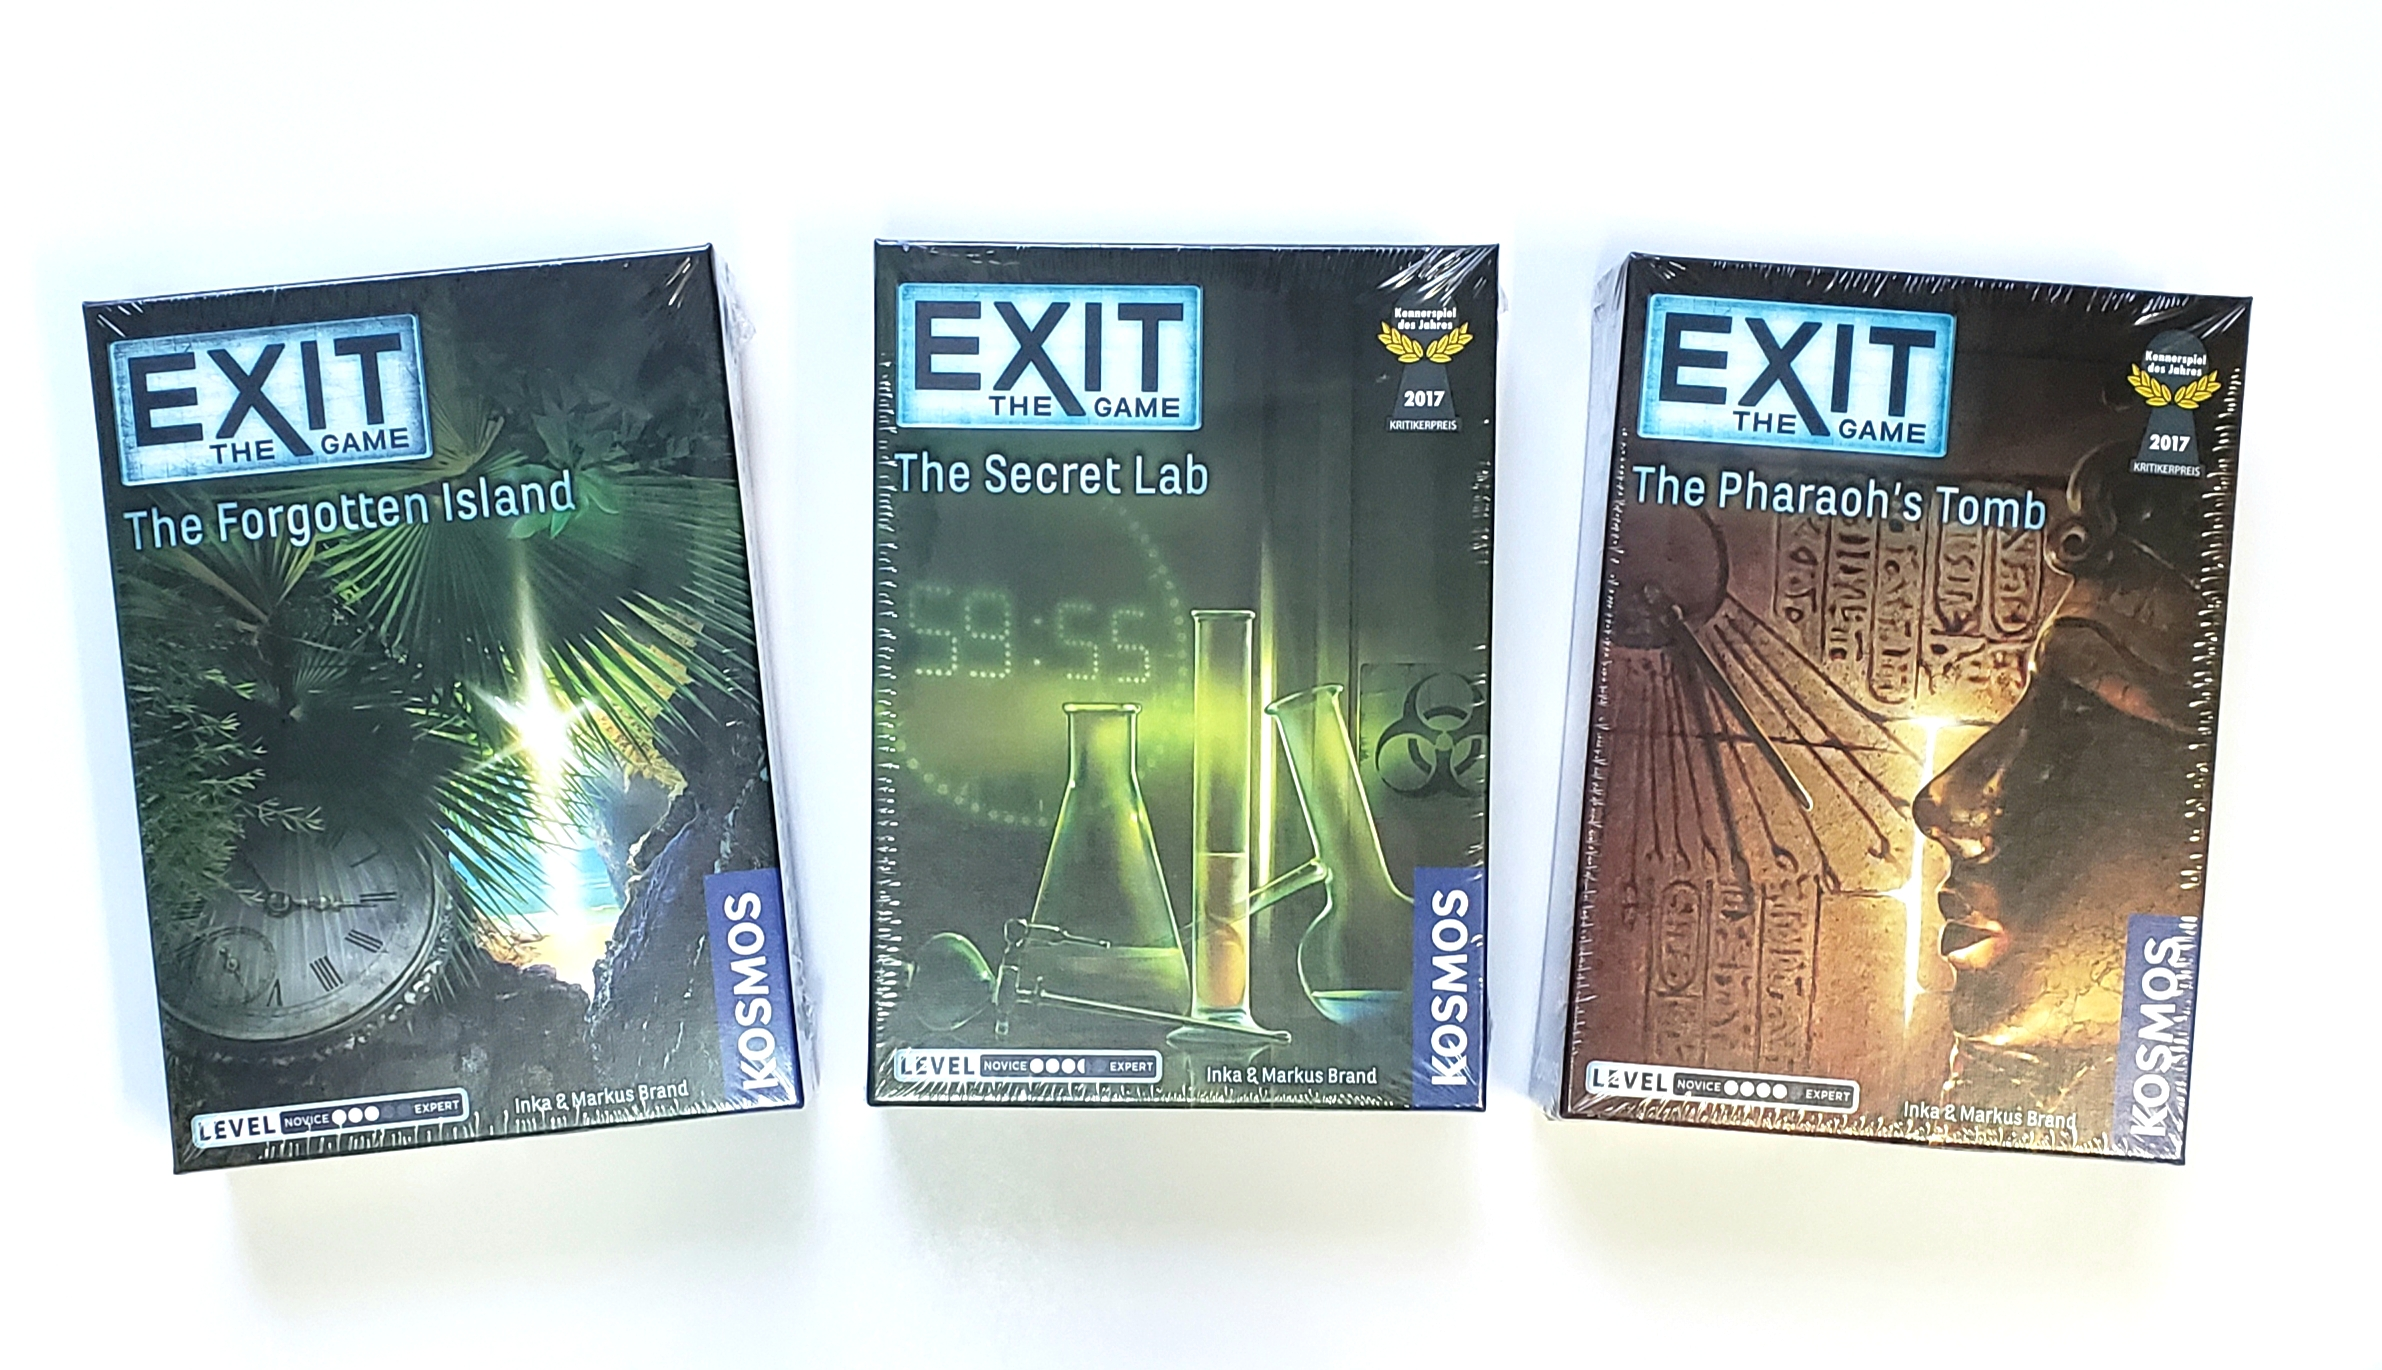 EXIT Game Series